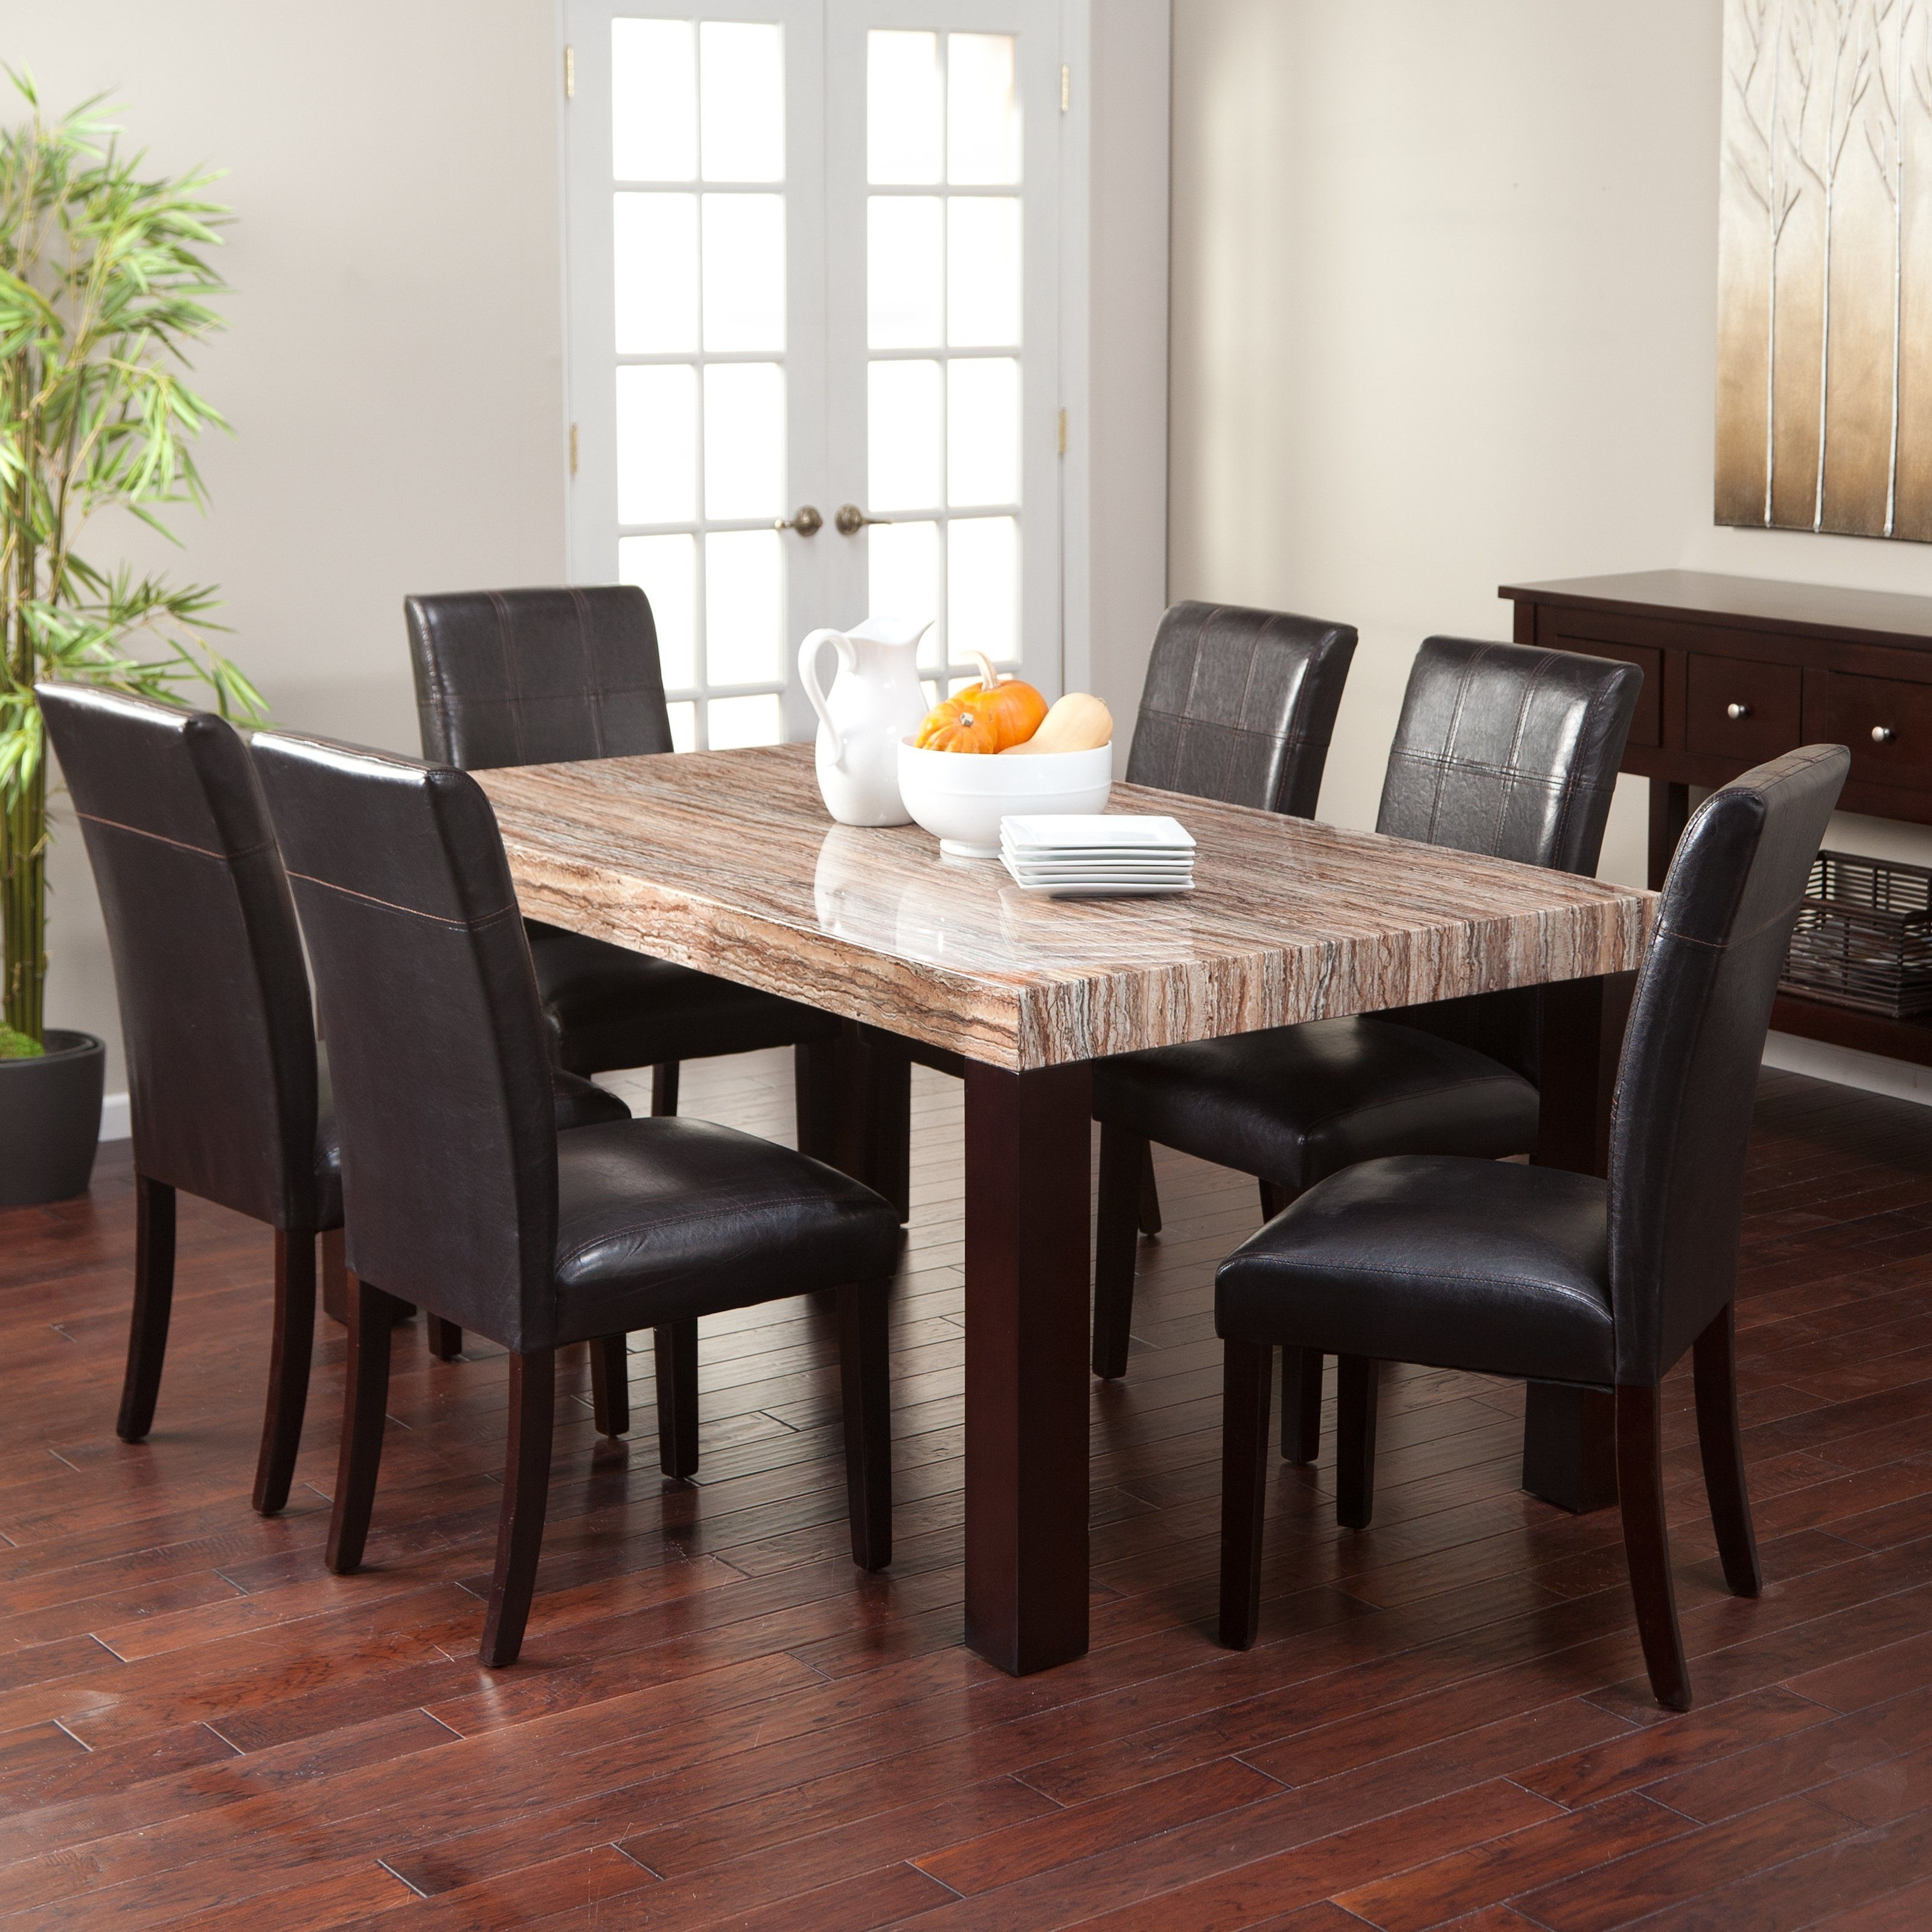 Parquet 7 Piece Dining Sets Throughout Trendy Carmine 7 Piece Dining Table Set – With Its Creamy Caramel Colored (View 6 of 25)